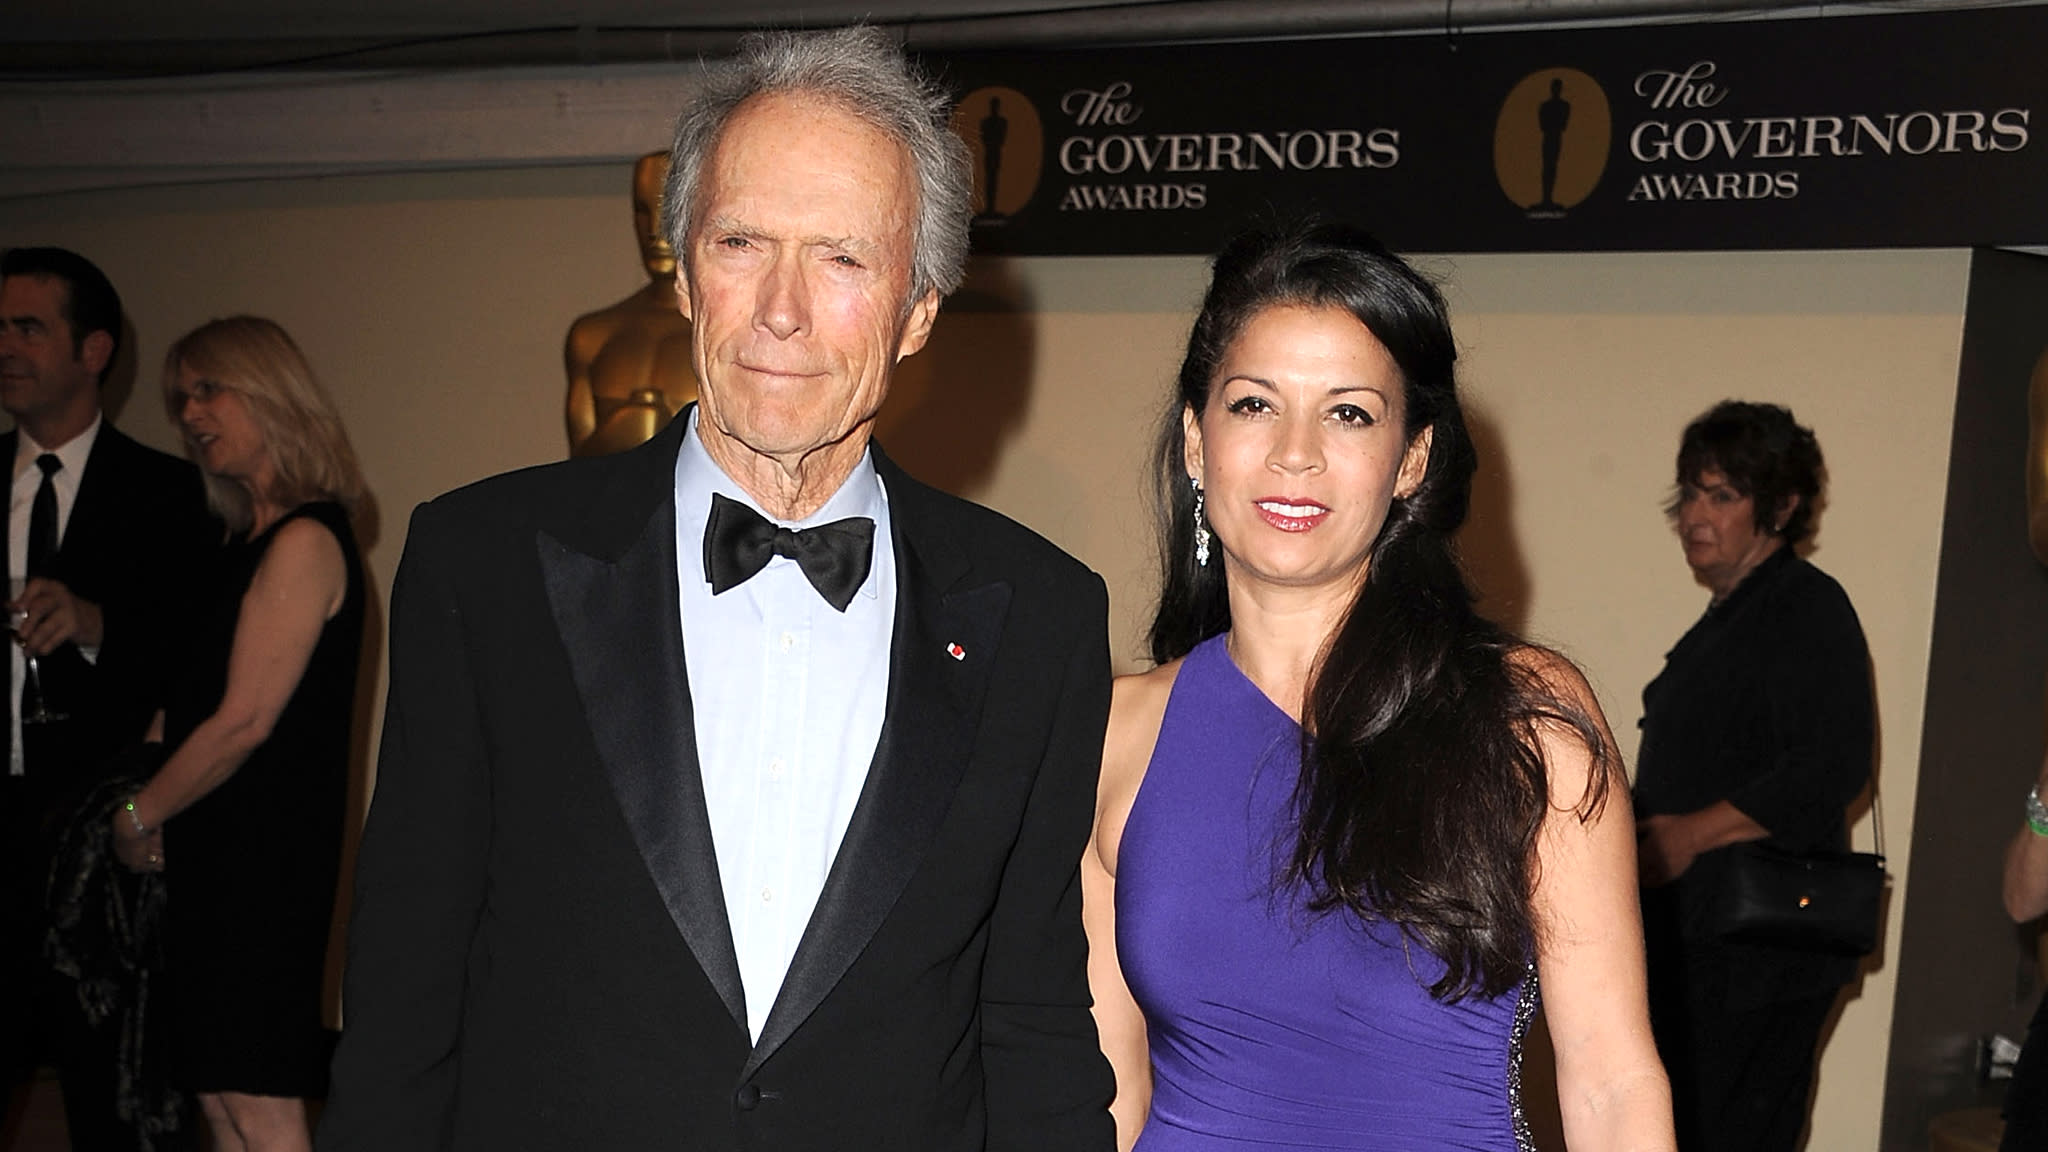 Dina eastwood files for legal separation